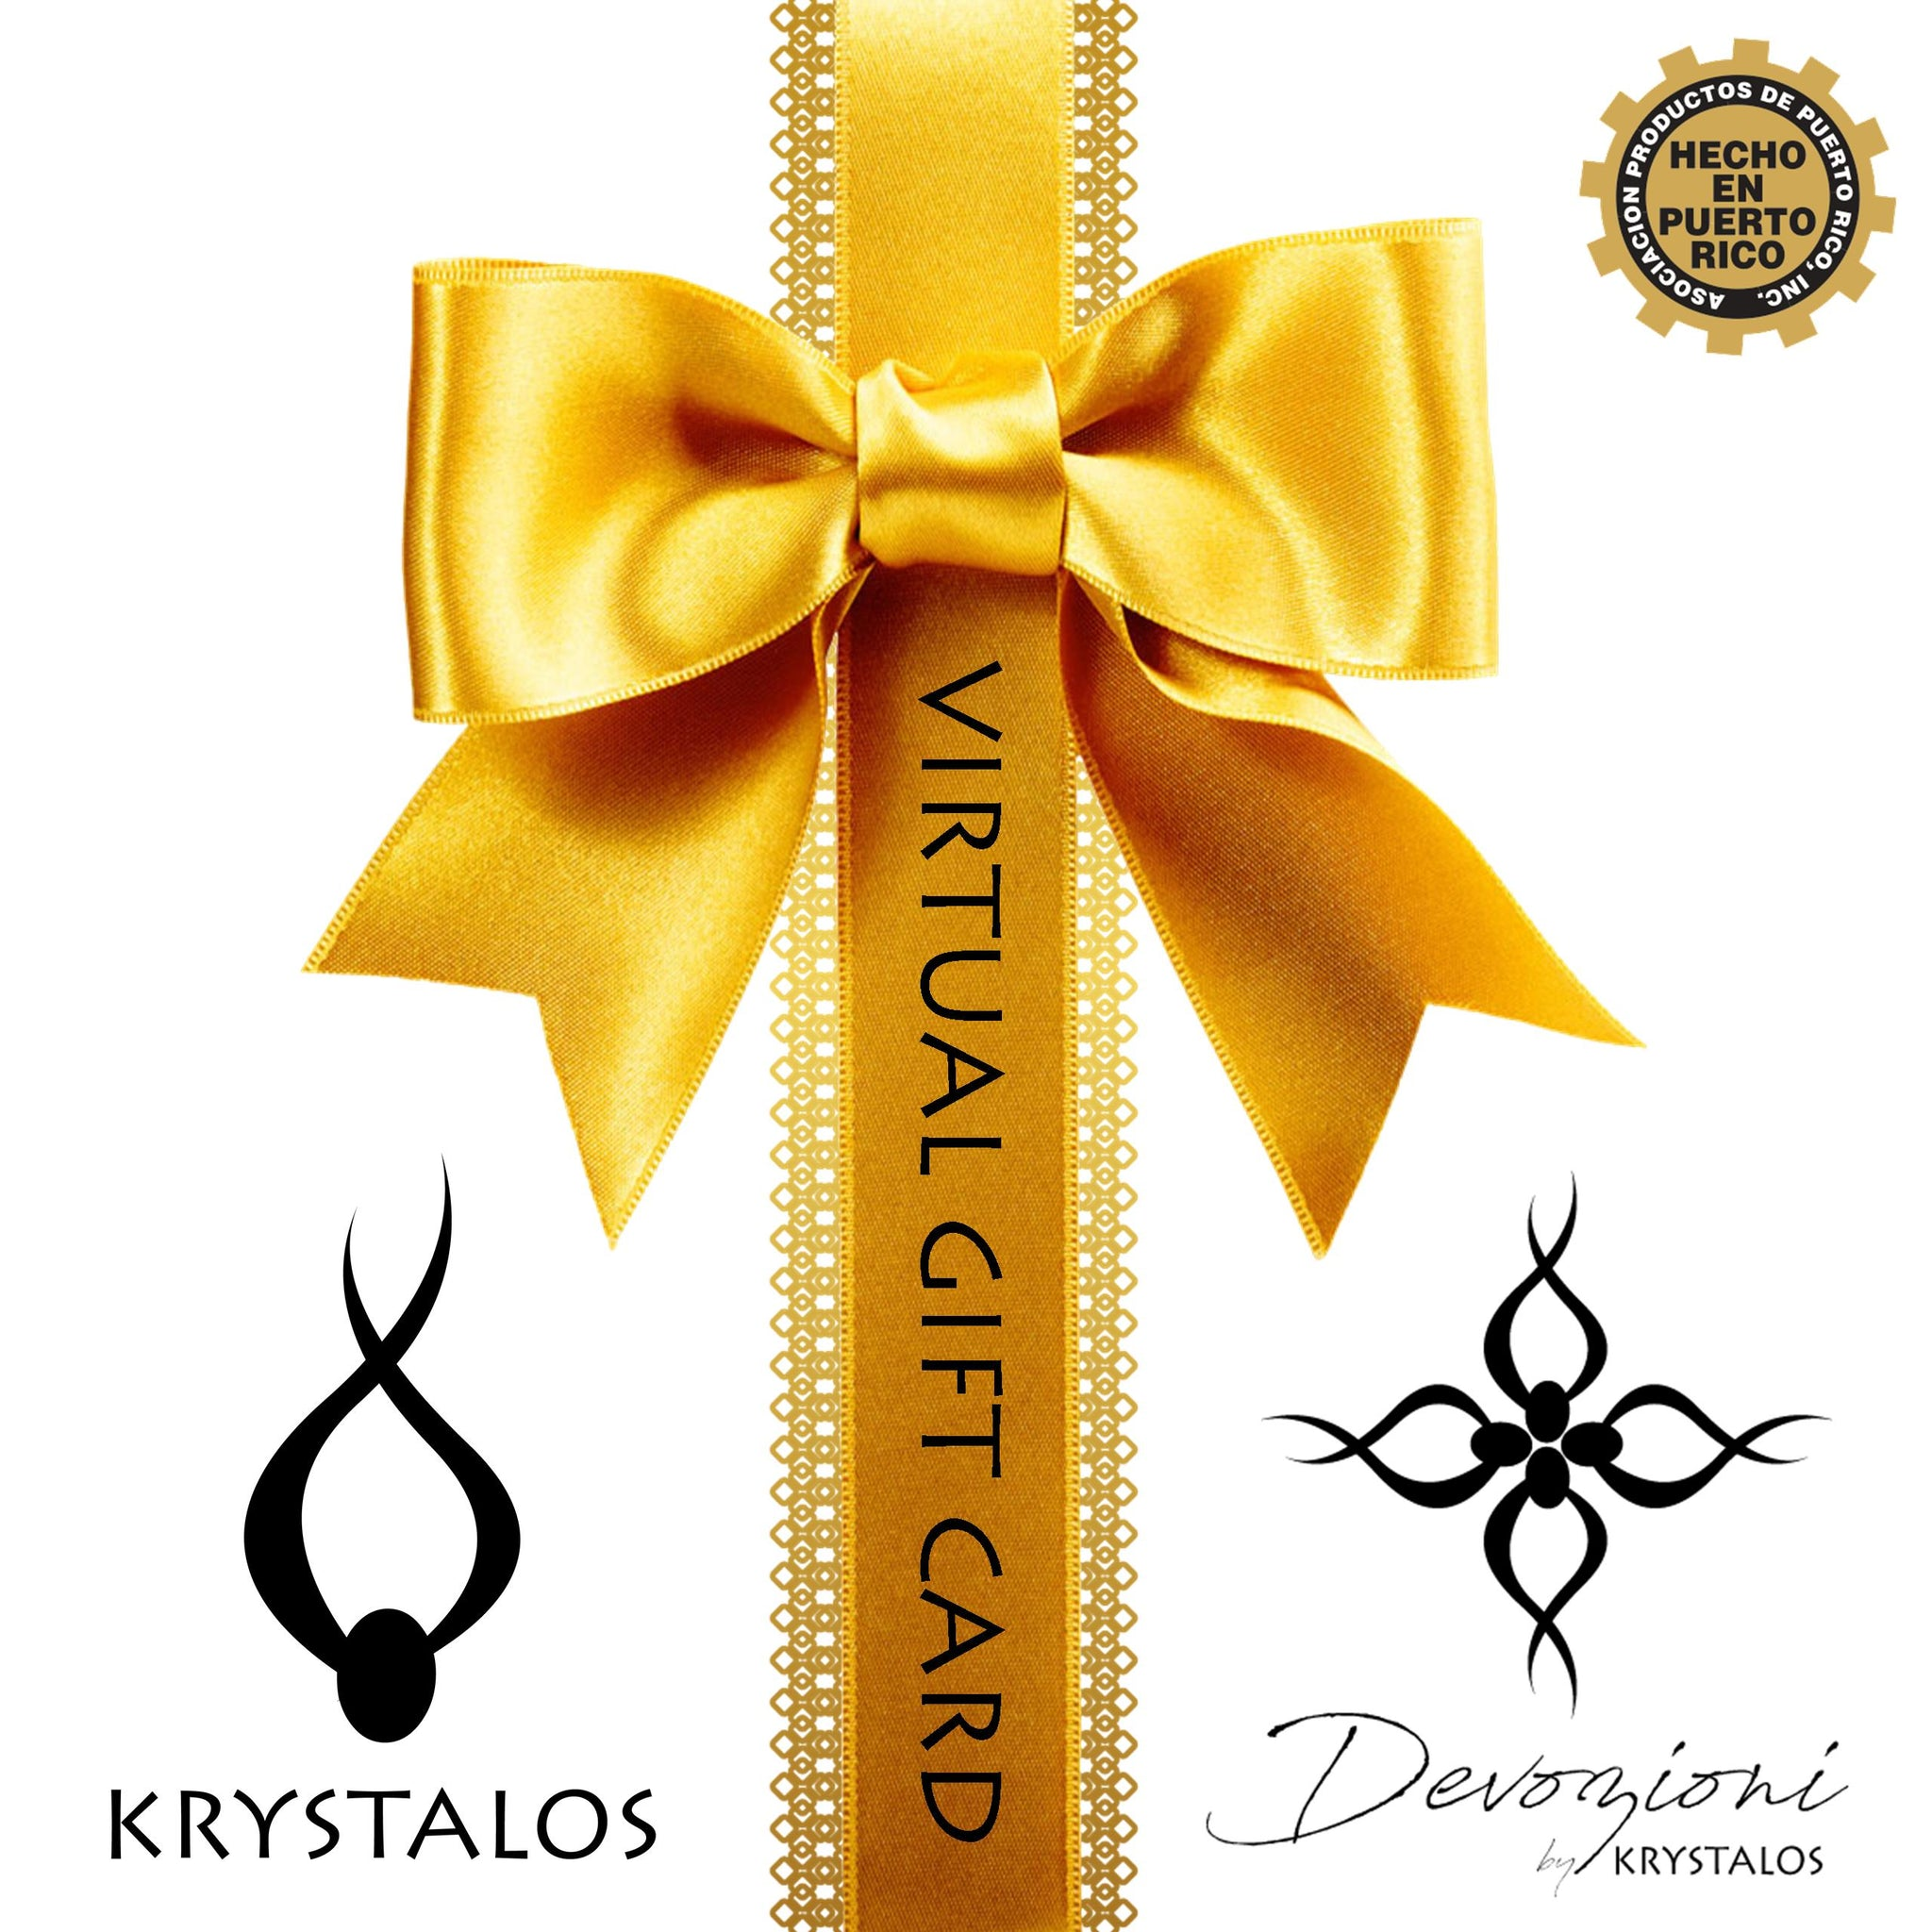 Krystalos Virtual Gift Card